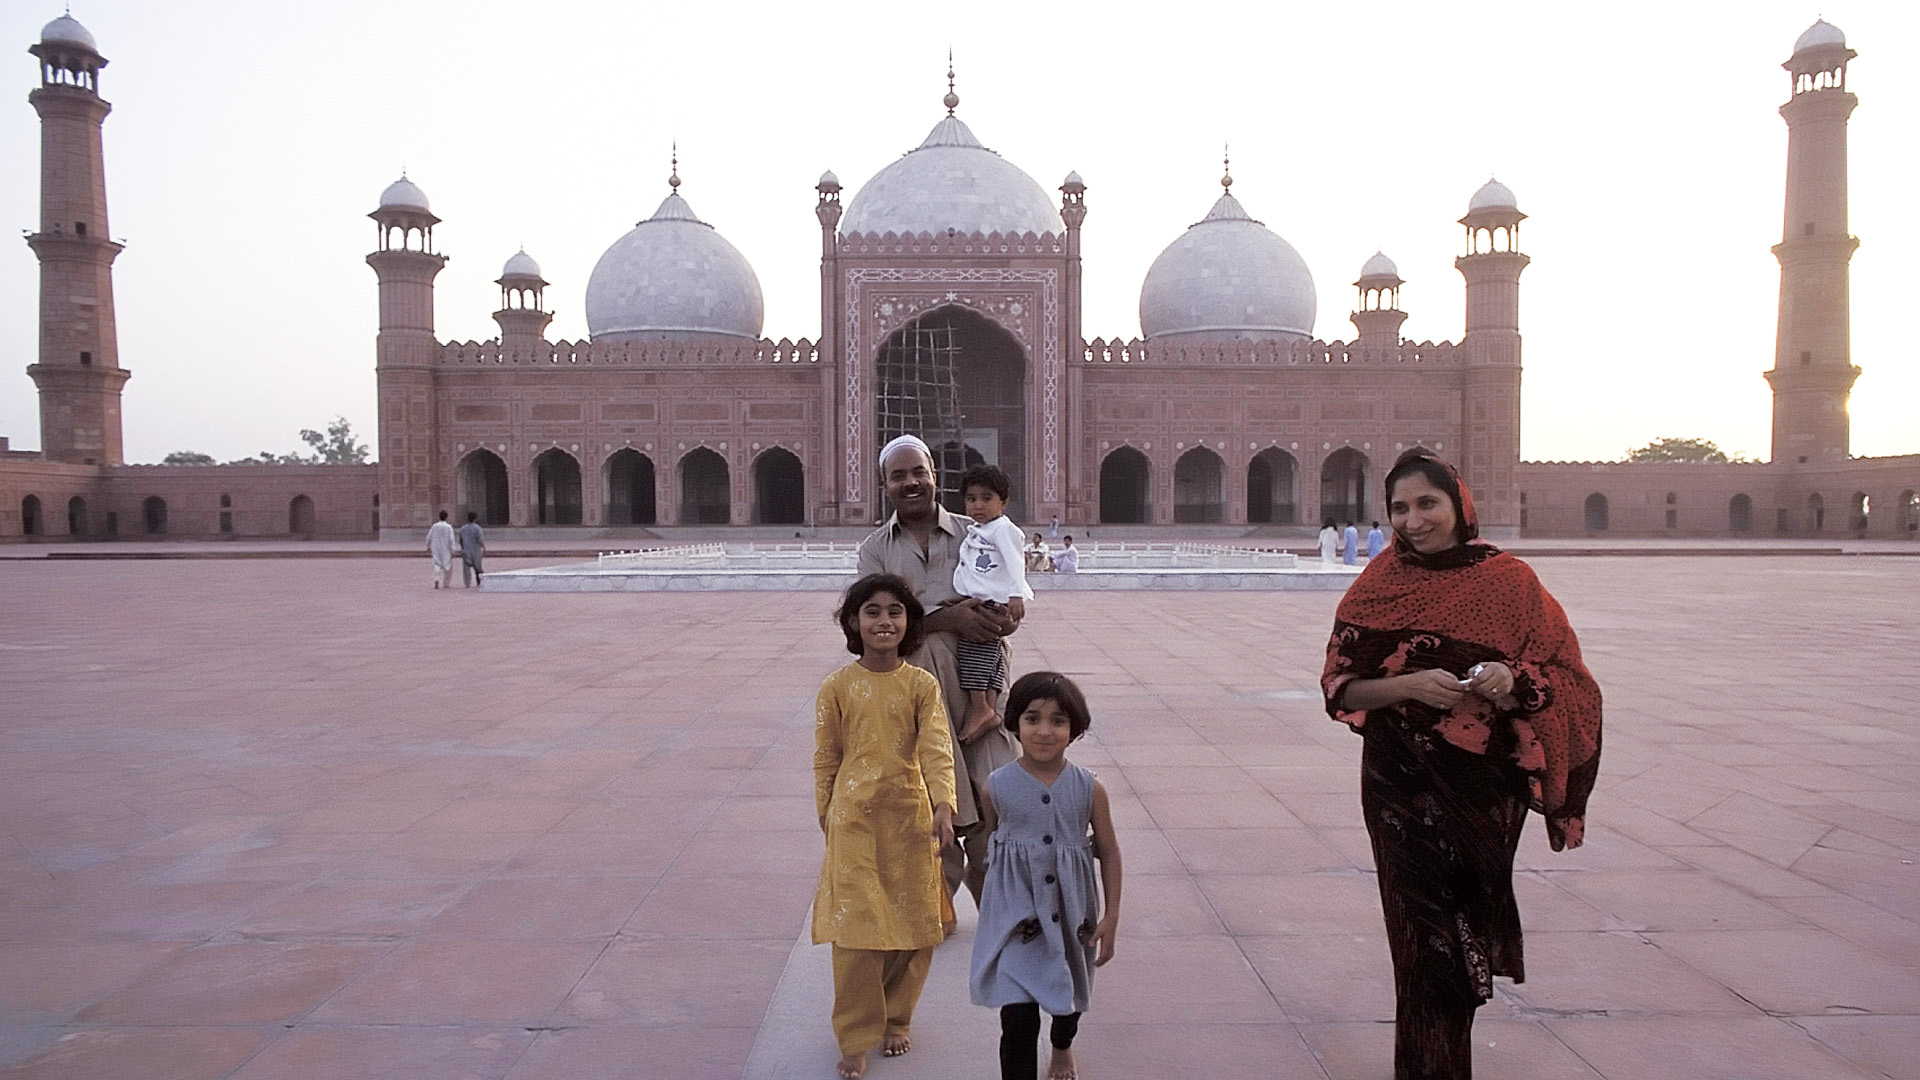 Family in the courtyard of the Badshahi Mosque at dusk, Lahore, Punjab, Pakistan